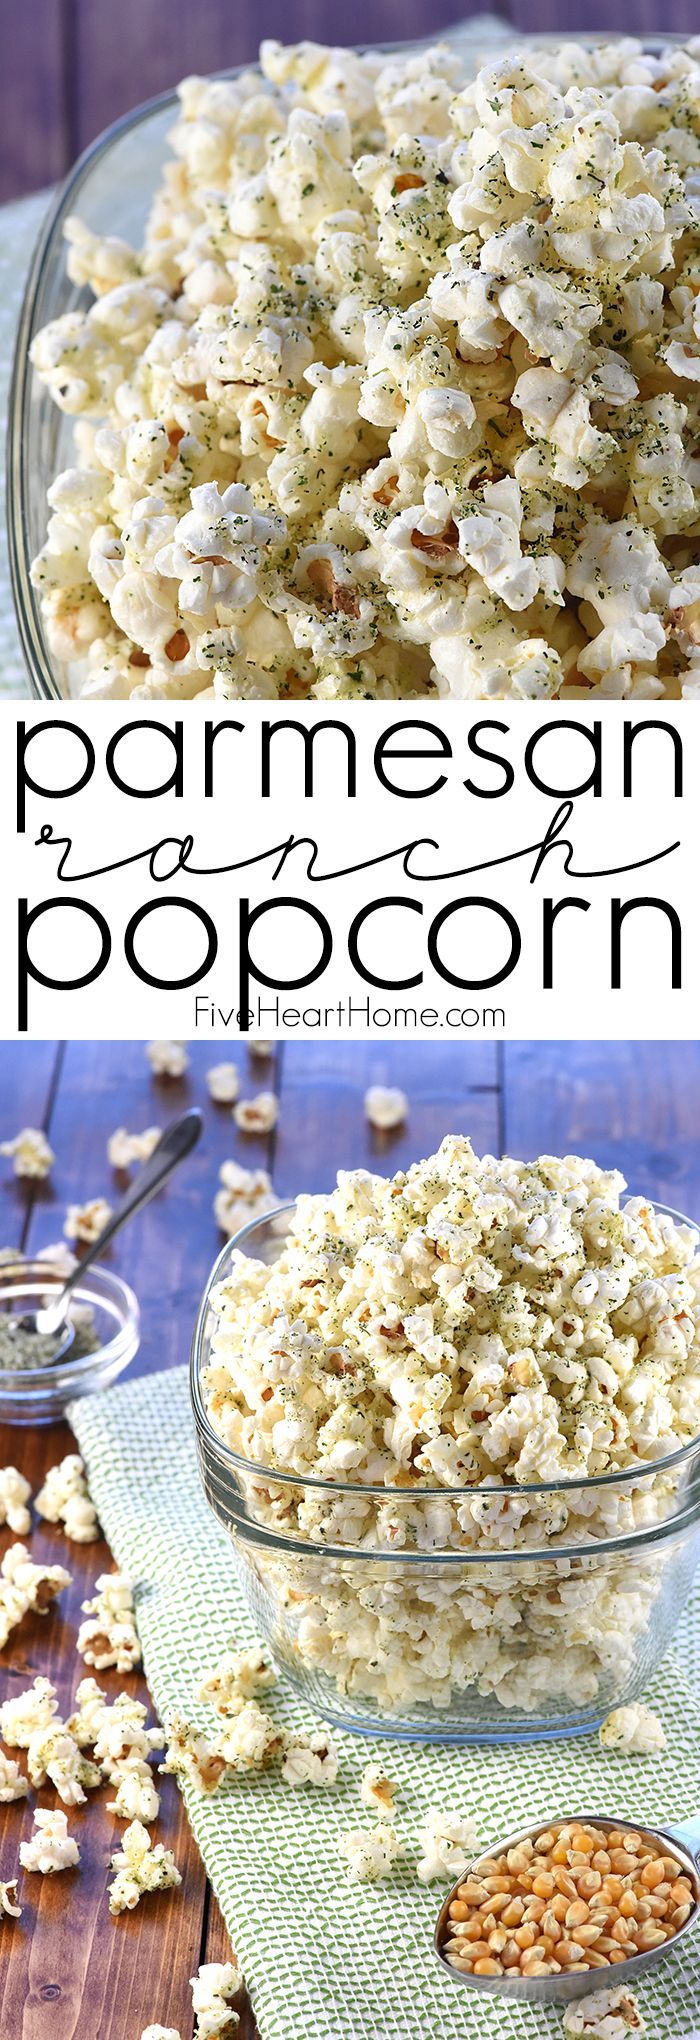 Parmesan Ranch Popcorn ~ freshly popped popcorn is drizzled in real butter and sprinkled with a savory mixture of Parmesan, dried herbs, and spices for a perfect movie night treat! | FiveHeartHome.com